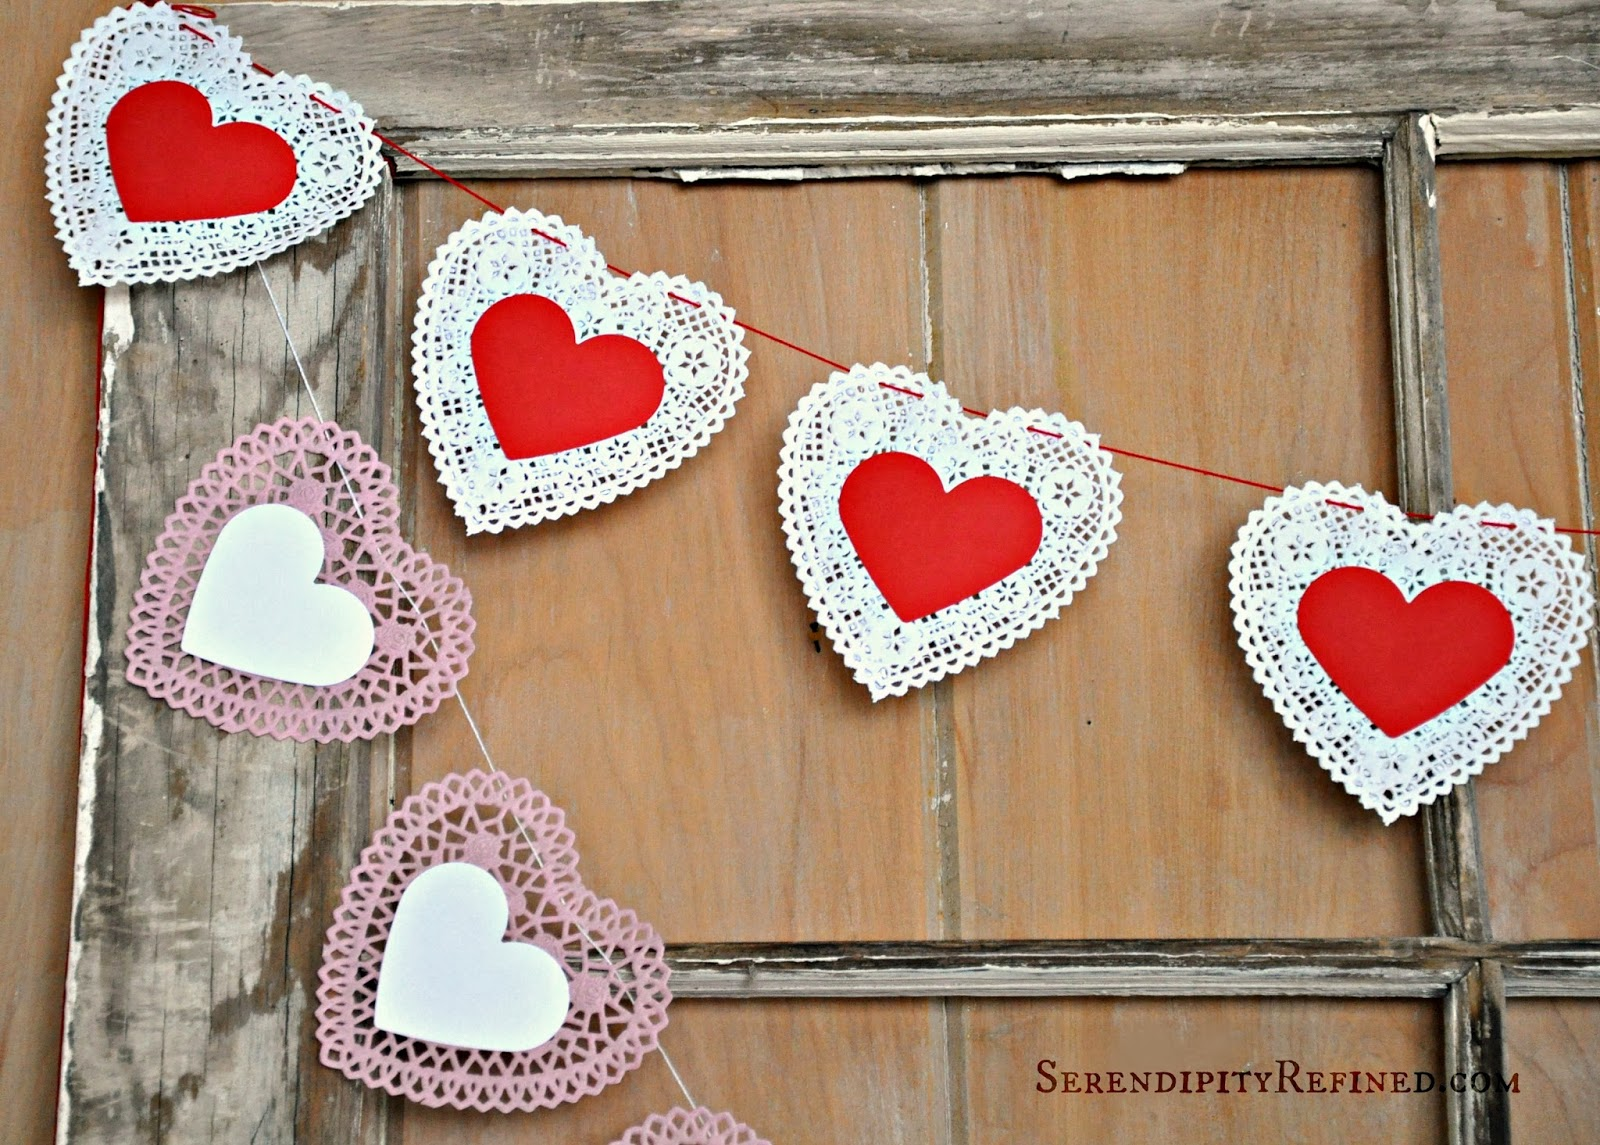 Serendipity Refined Blog: DIY Repurposed Valentine's Day ...